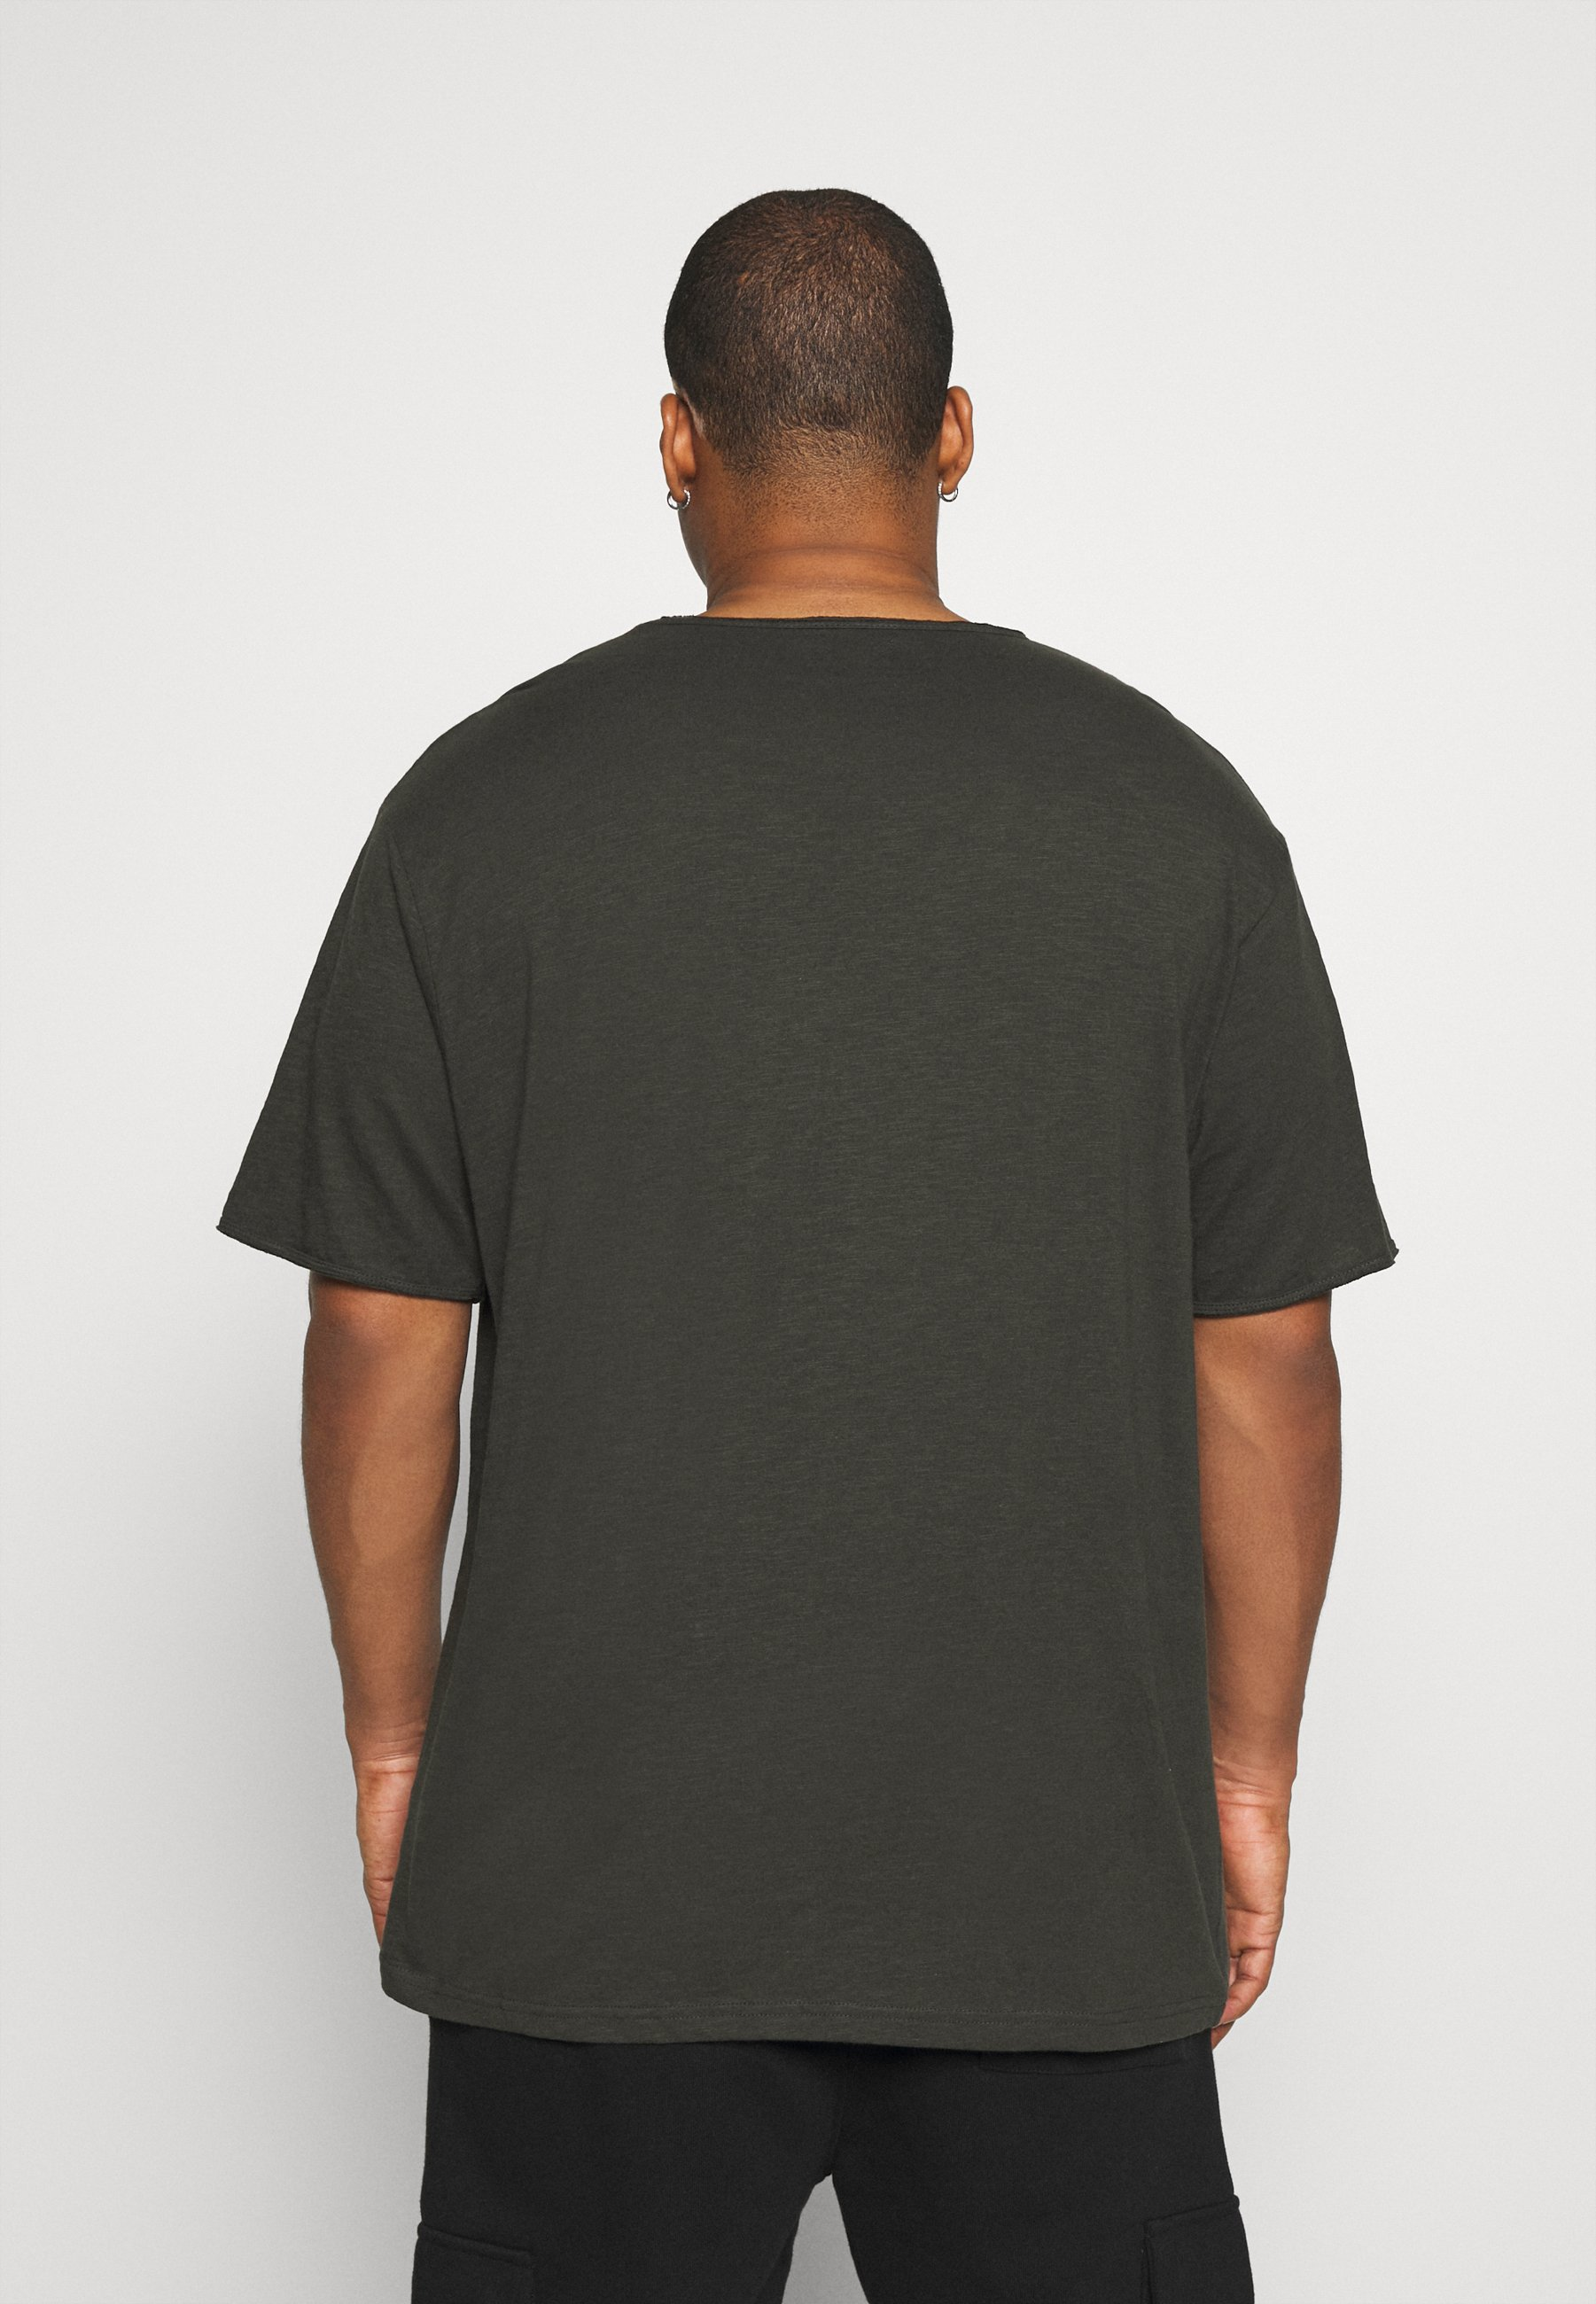 Jack´s Sportswear RAW VNECK SLUB TEE - Basic T-shirt - dusty black SOYni